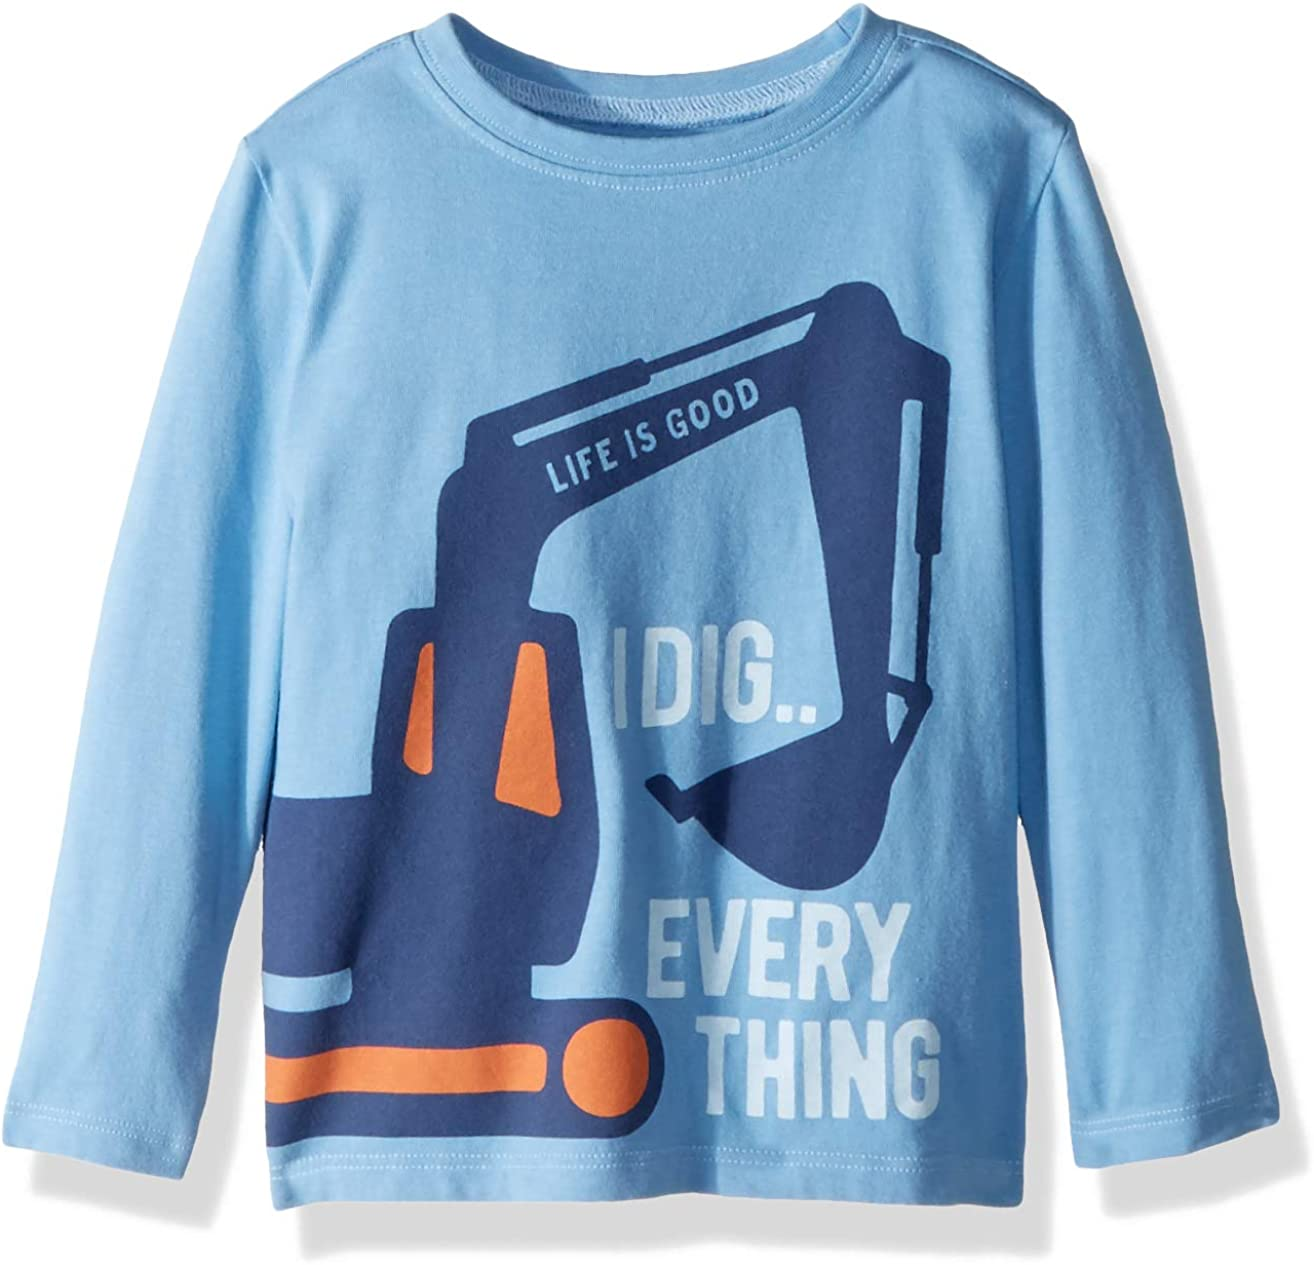 Life is Good Boys Longsleeve Toddler Tee I Dig Everything